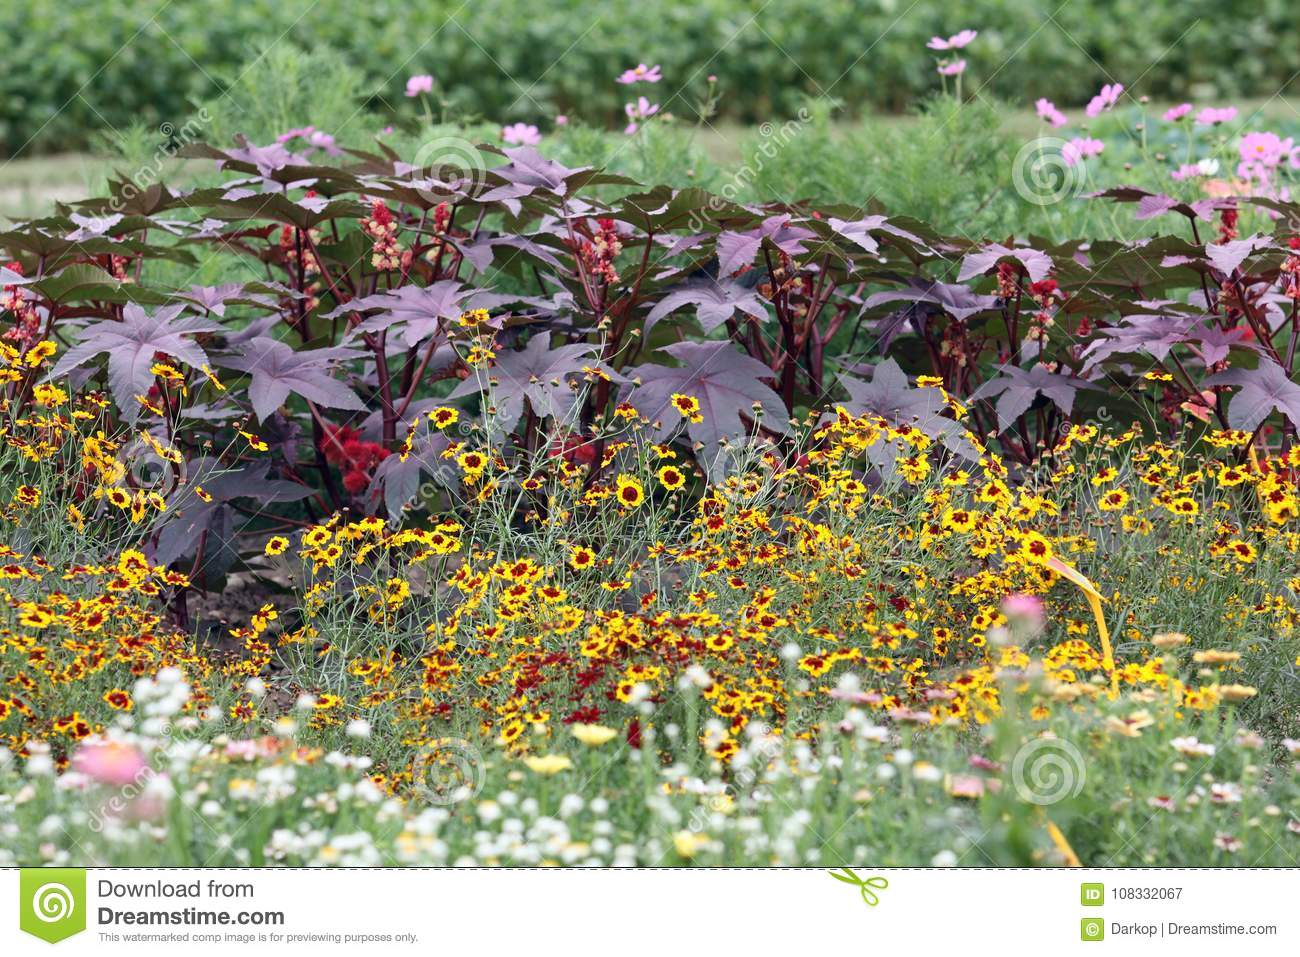 A blooming summer garden bed with high annuals stock image image download a blooming summer garden bed with high annuals stock image image of beds izmirmasajfo